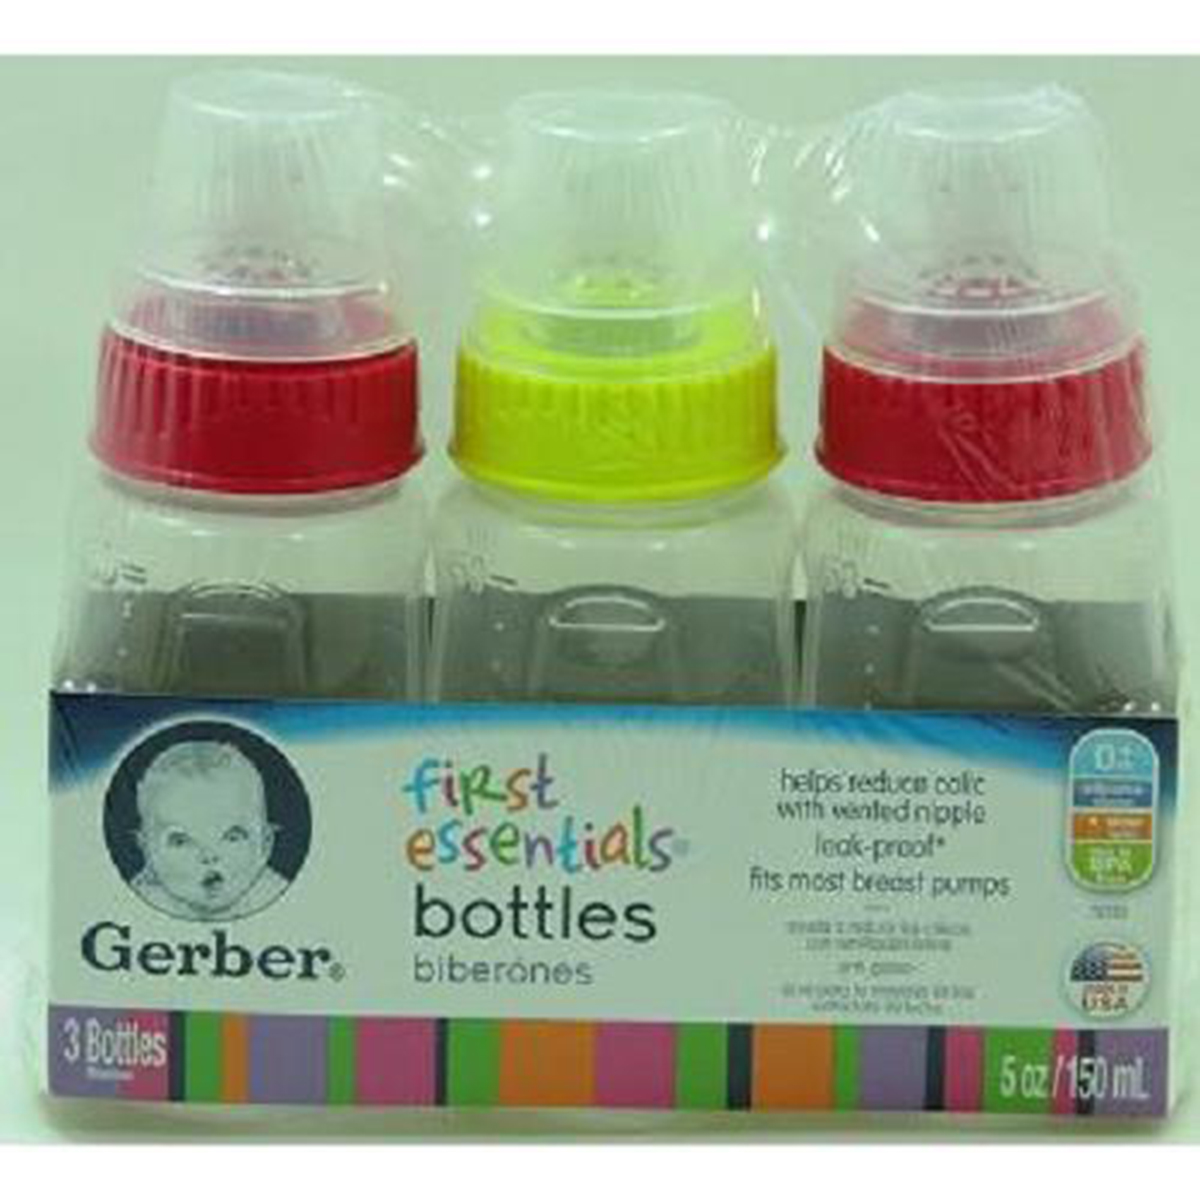 Product Of Gerber, Feeding Bottle With Latex Nipple (Clear), Count 1 (5 oz) - Baby Care Accessories / Grab Varieties & Flavors